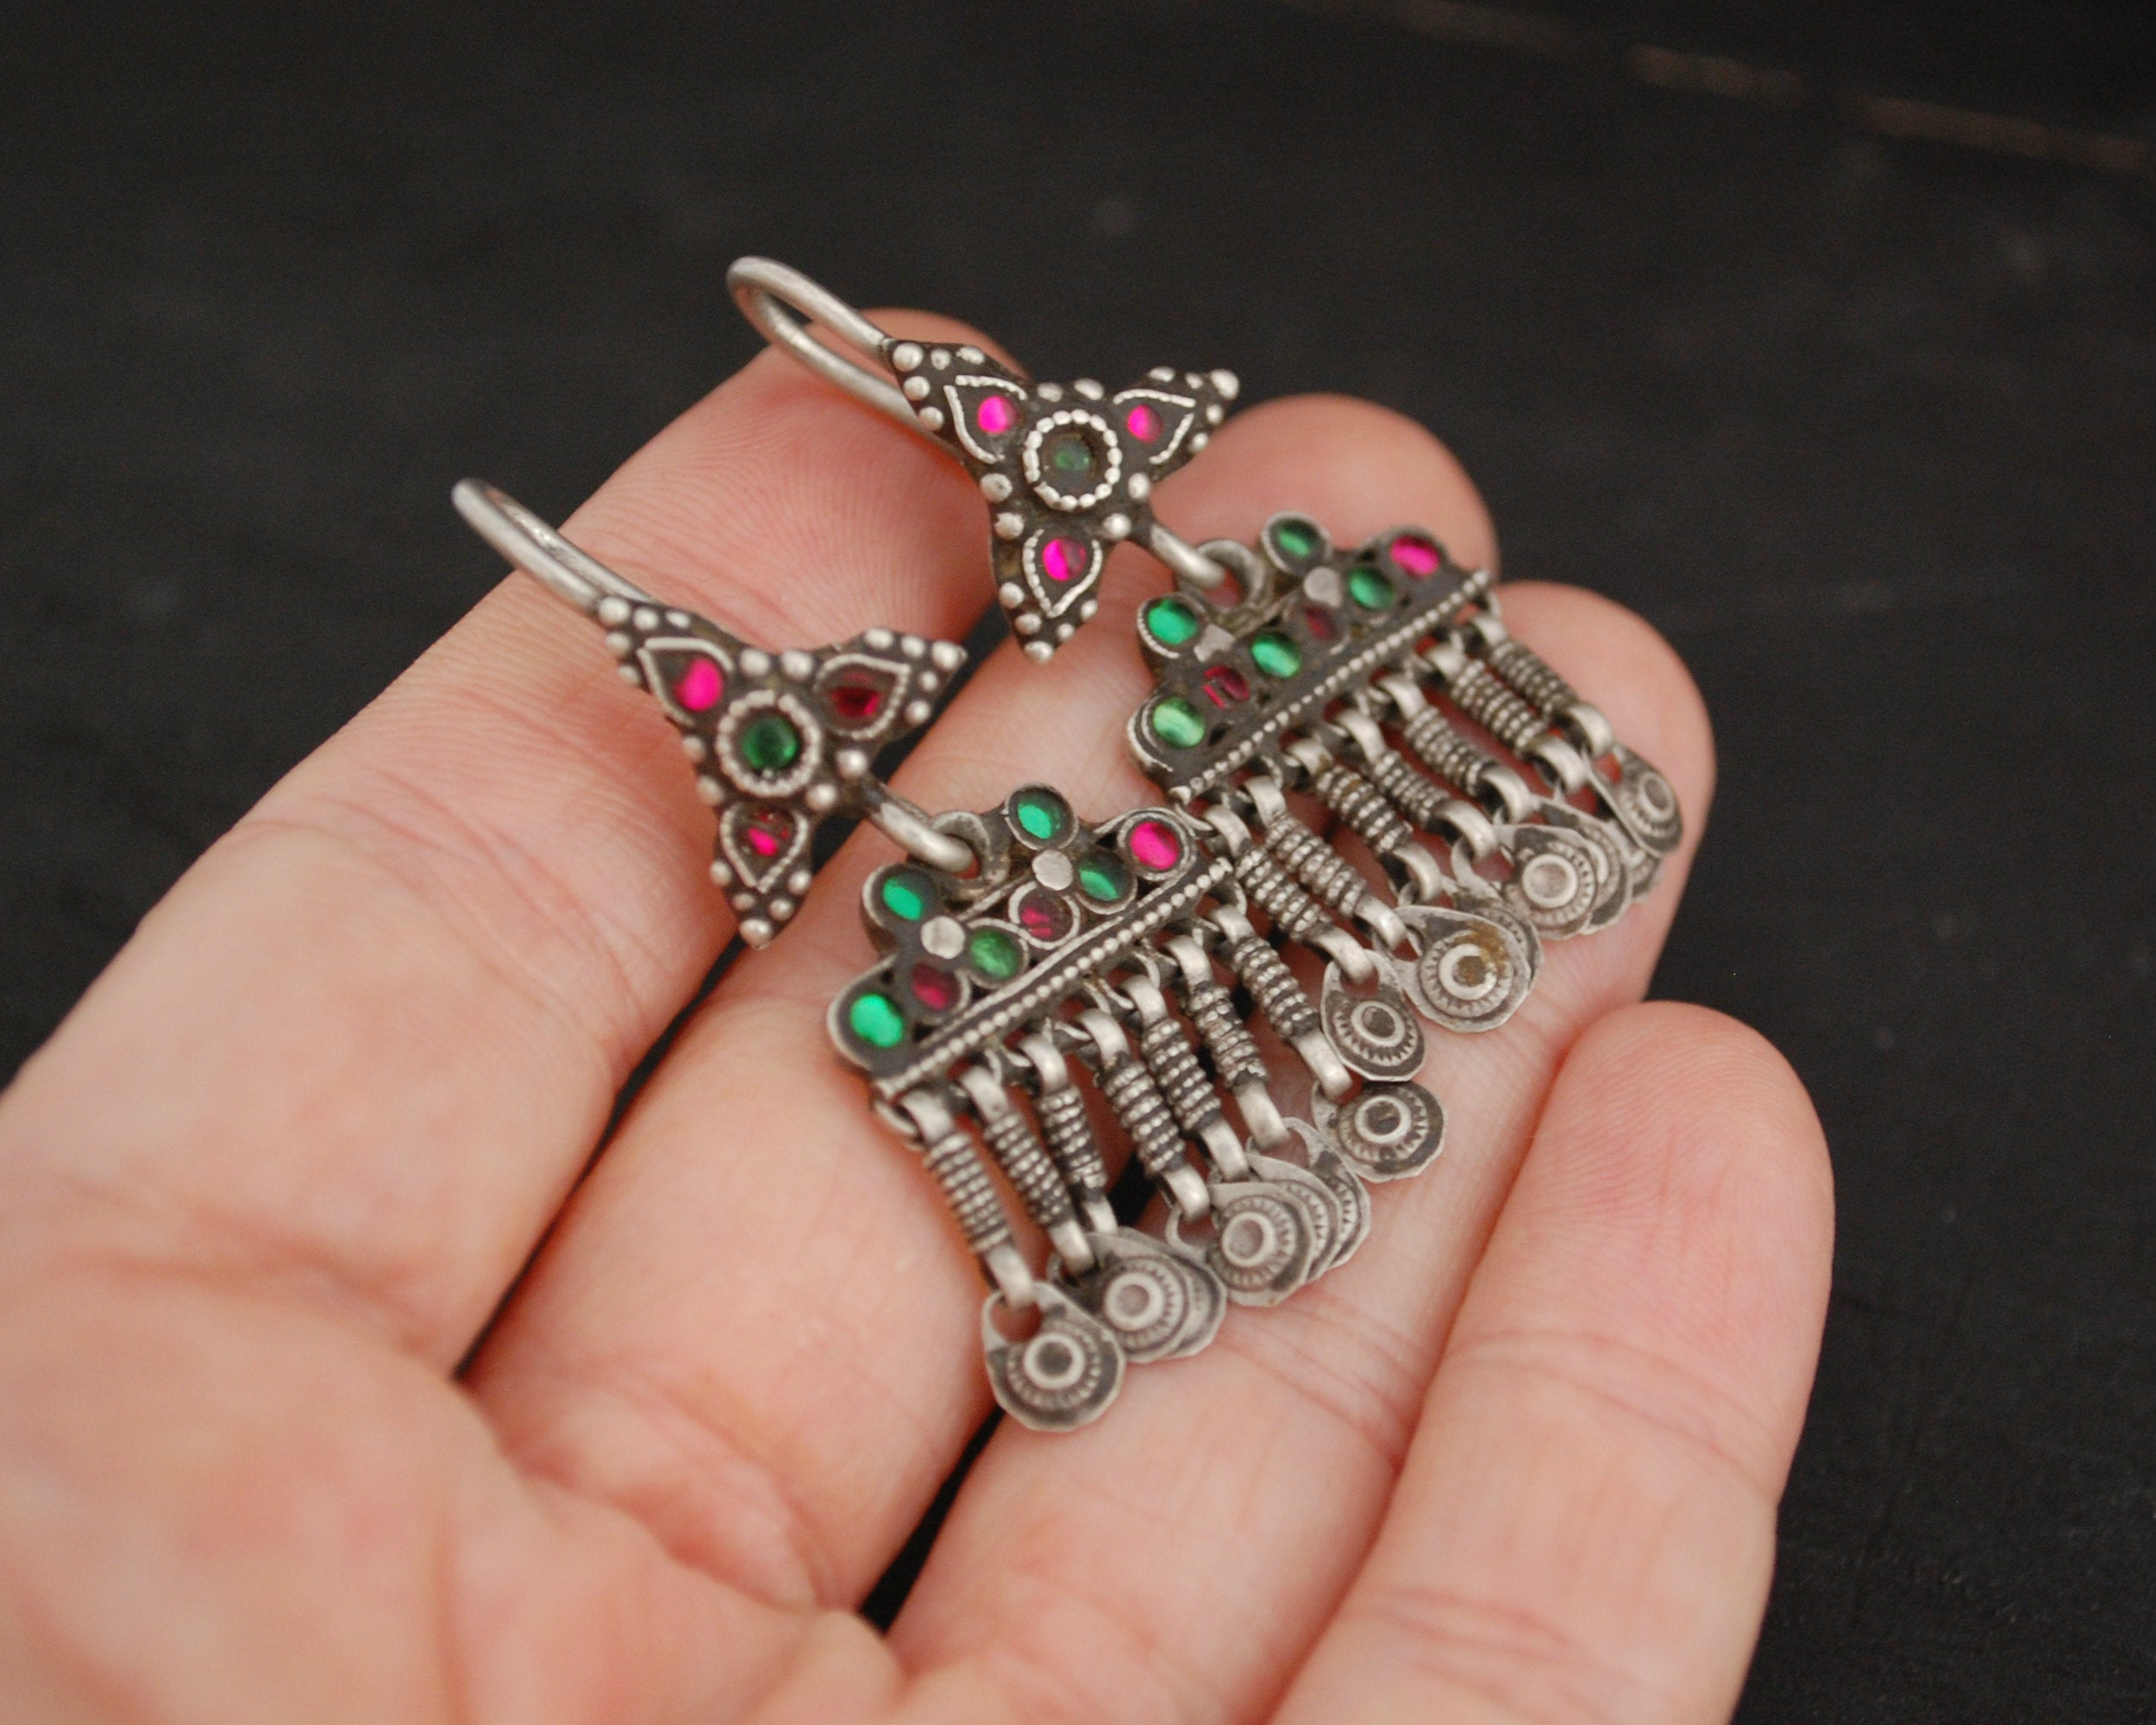 Afghani Earrings with Pink and Green Glass